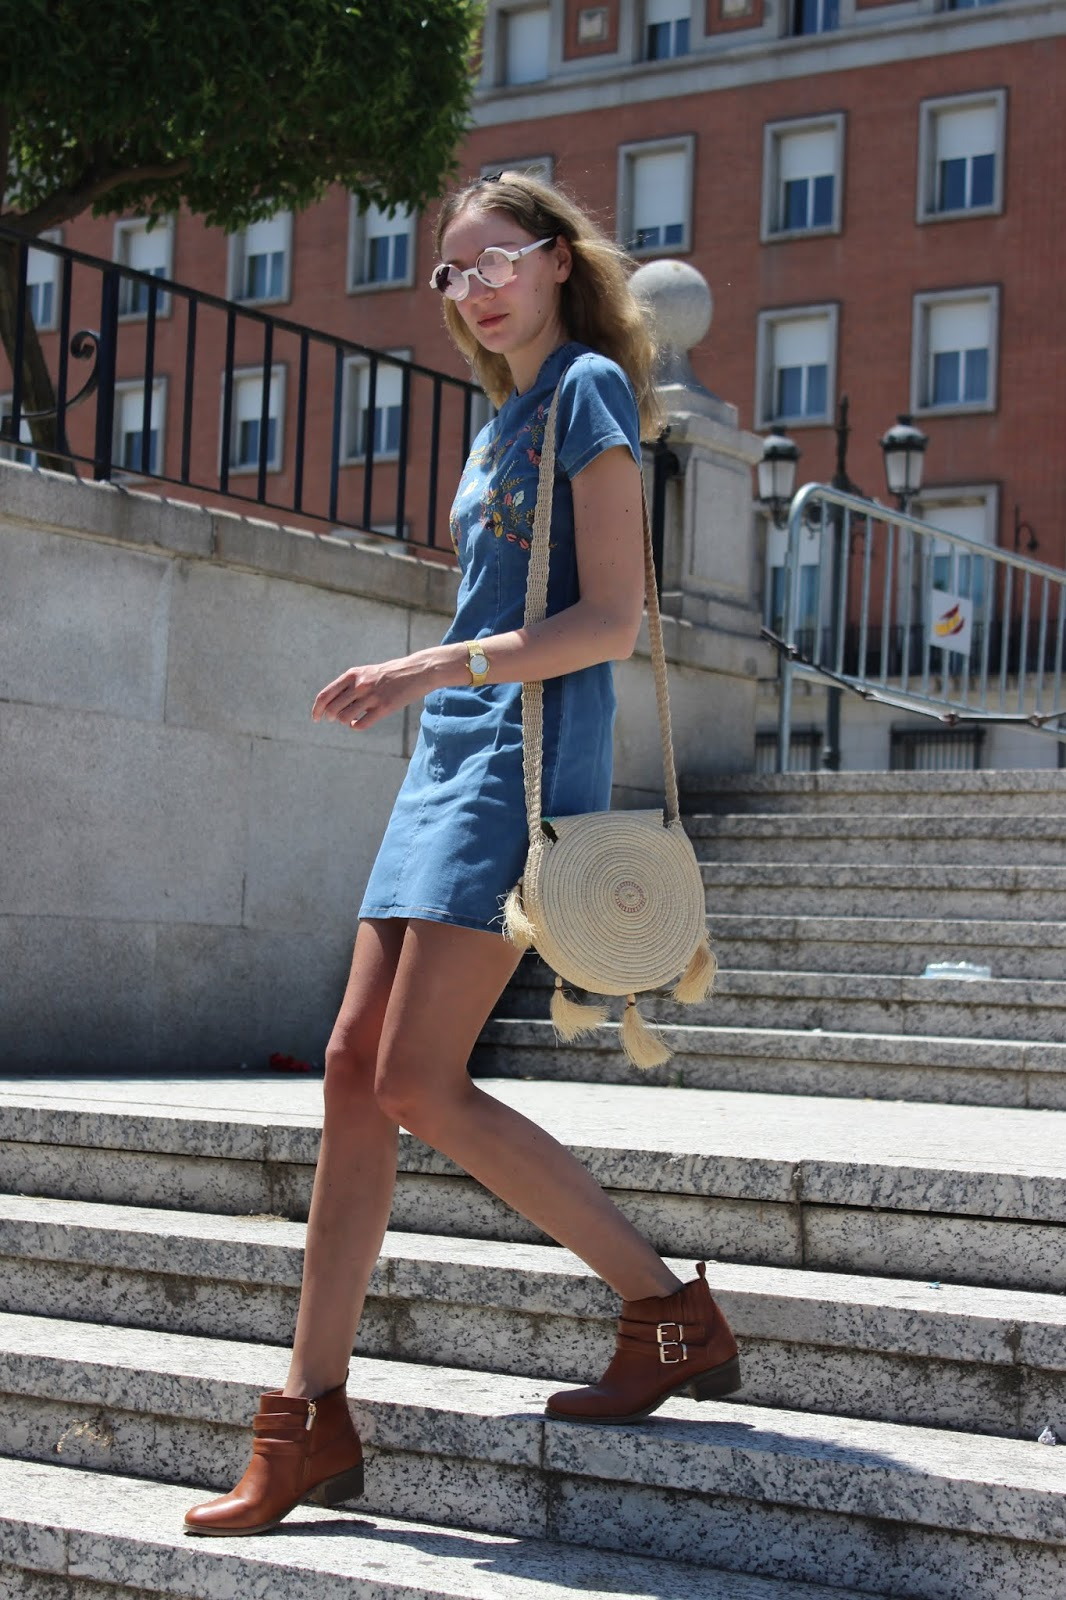 denim-street-style-inside-dress-raffia-round-bag